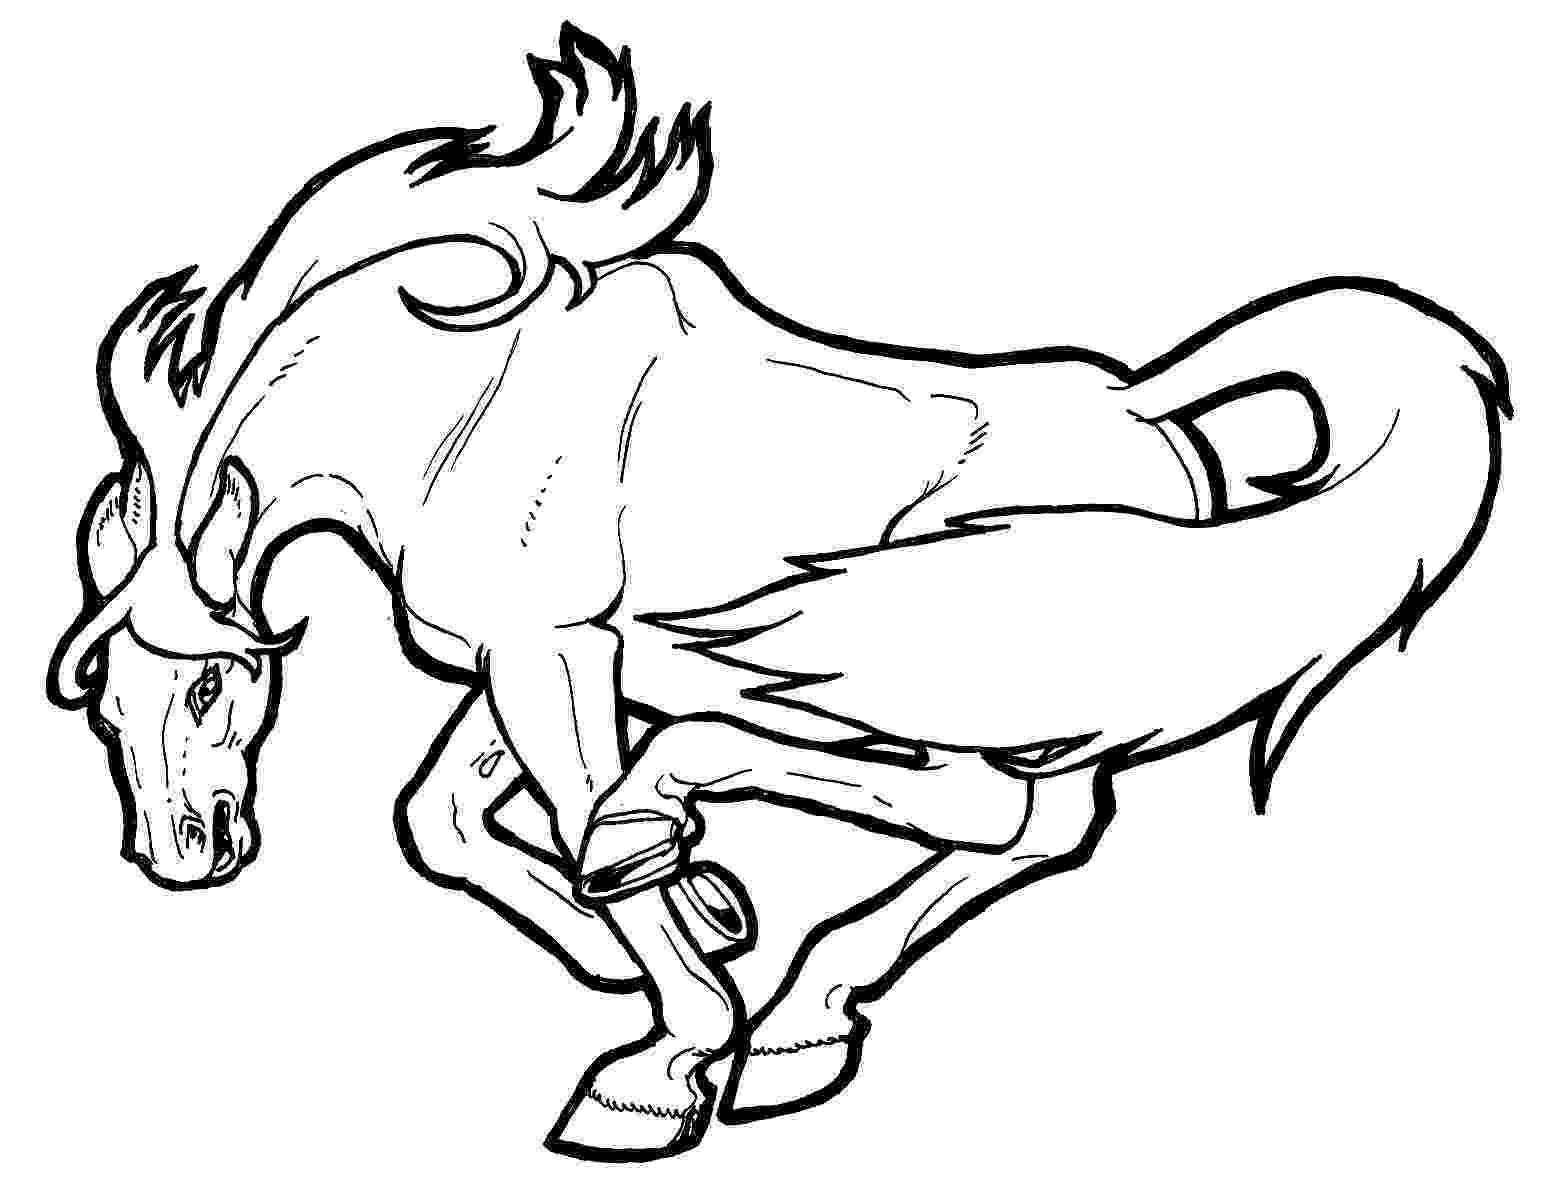 horse coloring pages to print for free horse coloring pages for kids coloring pages for kids pages horse coloring free print for to